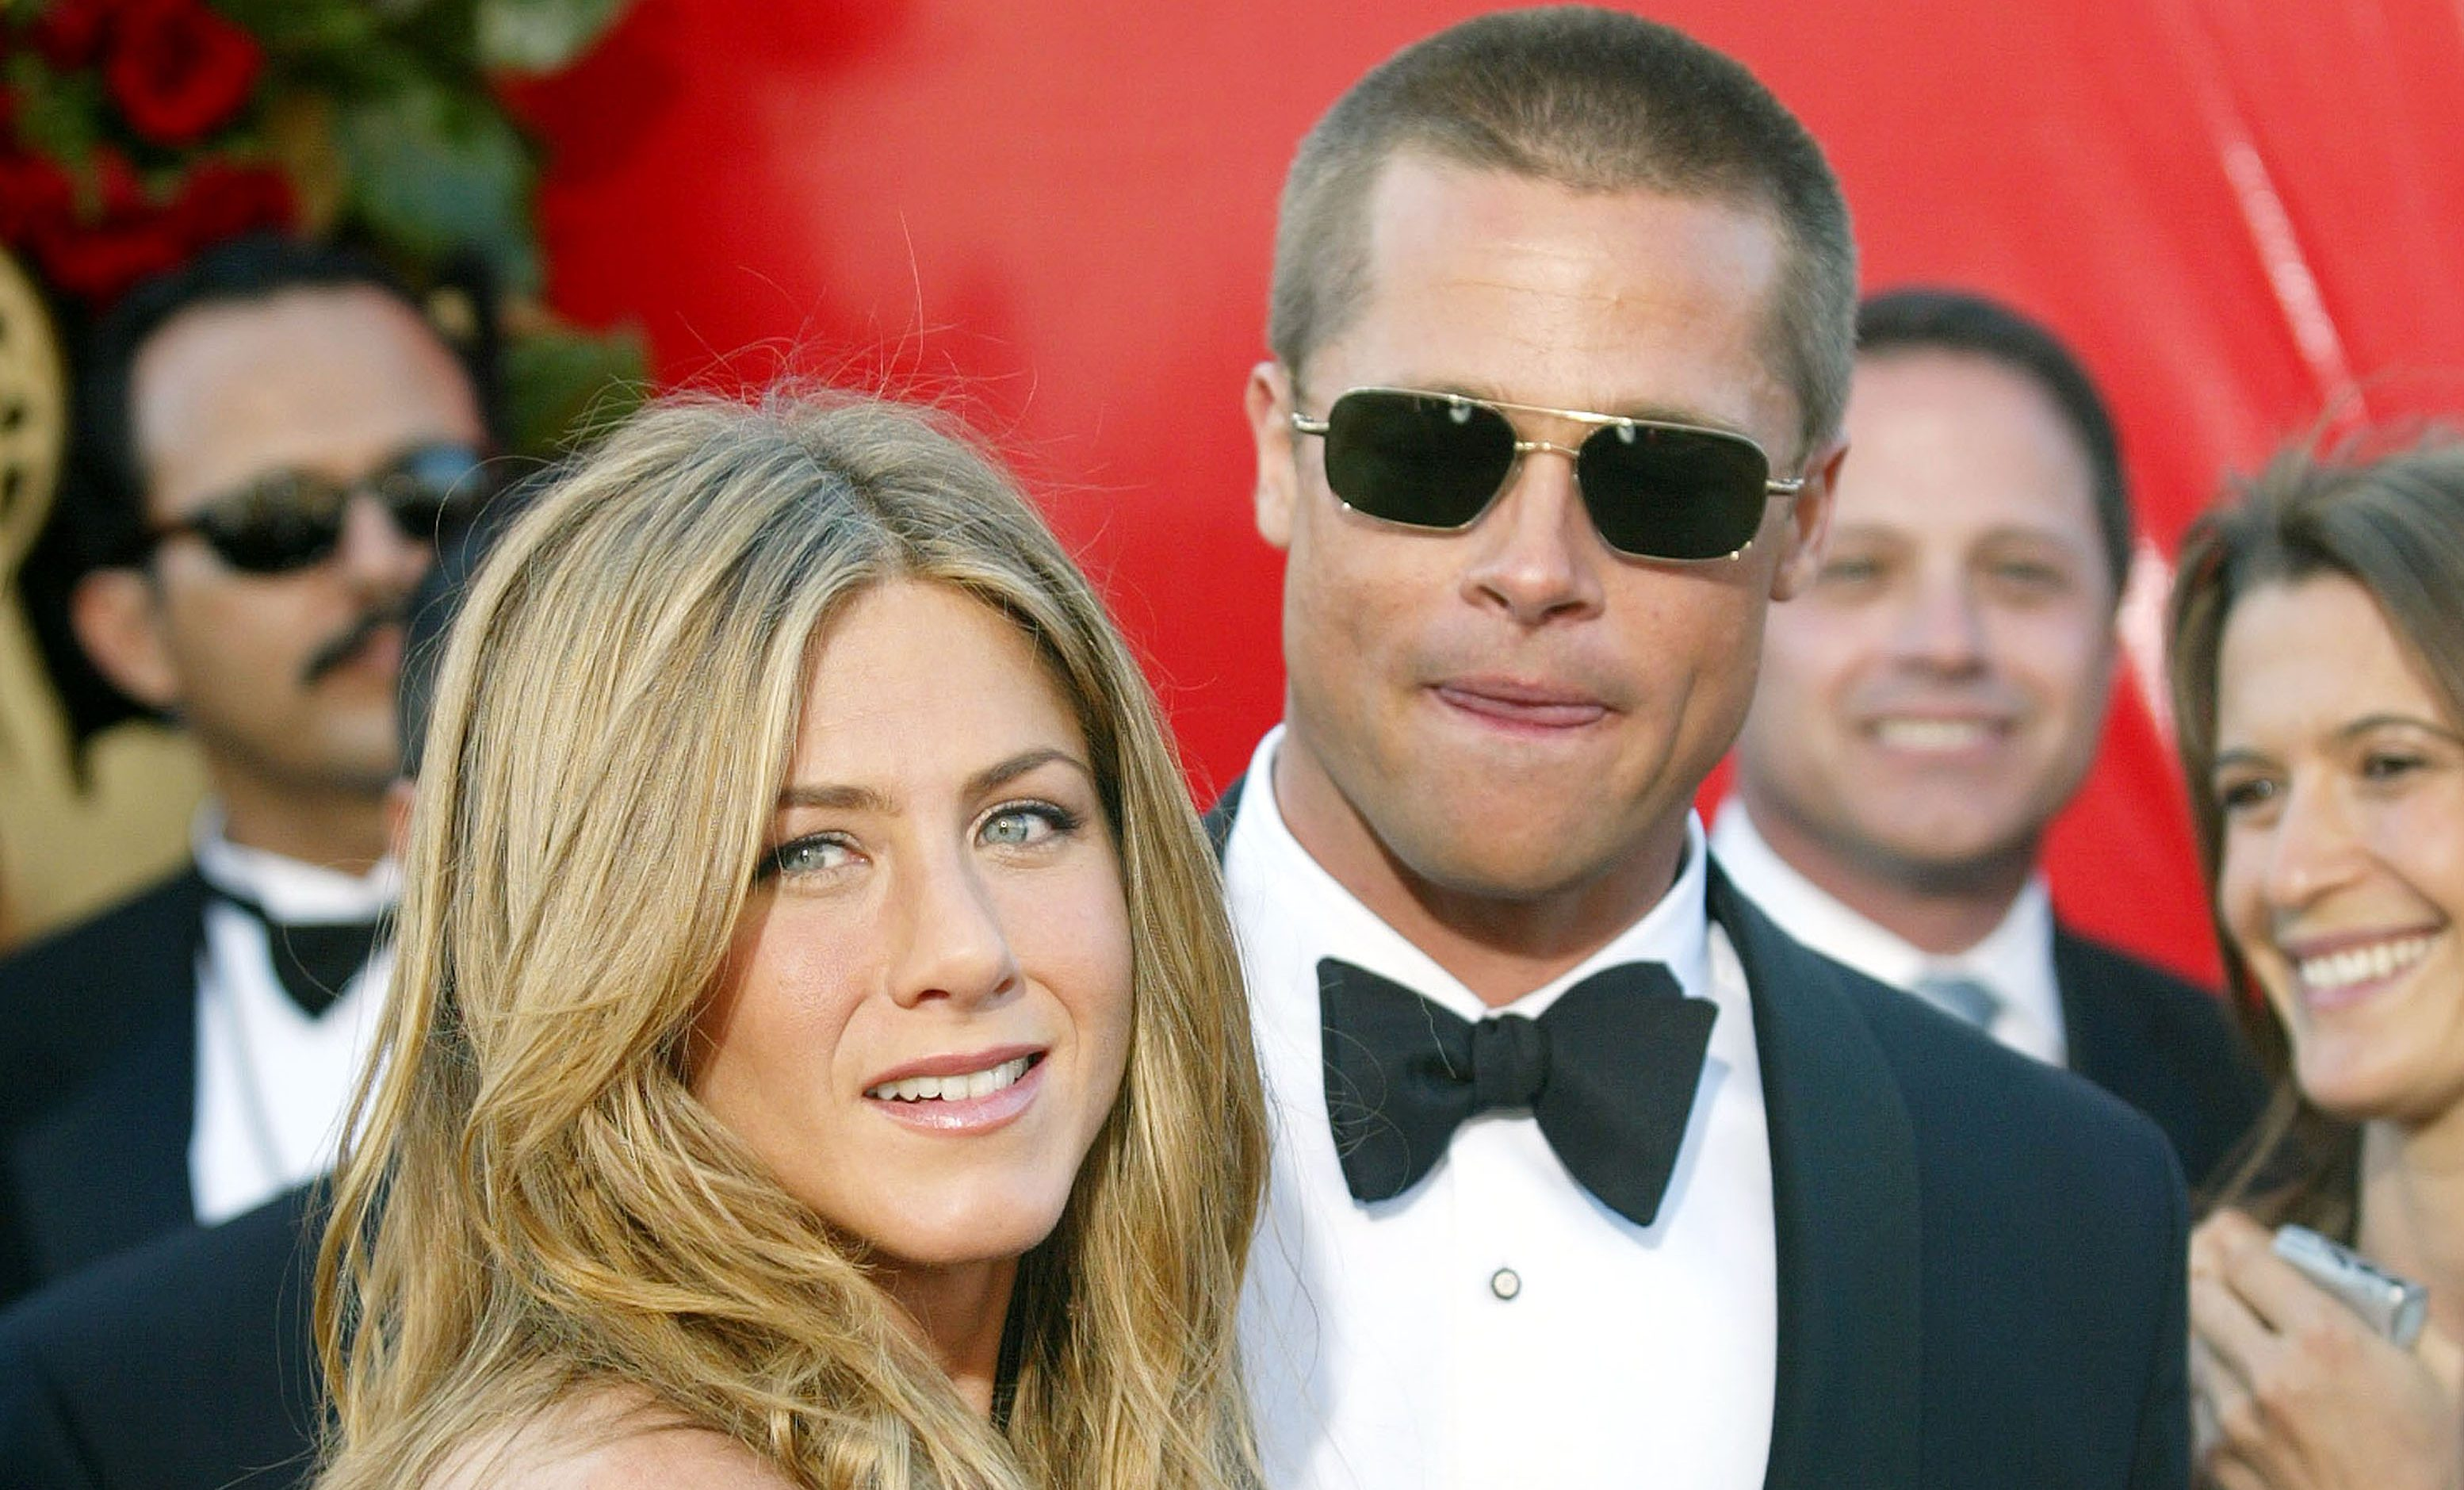 Fans desperate to see Brad Pitt and Jennifer Aniston get back together again after reuniting at awards ceremony